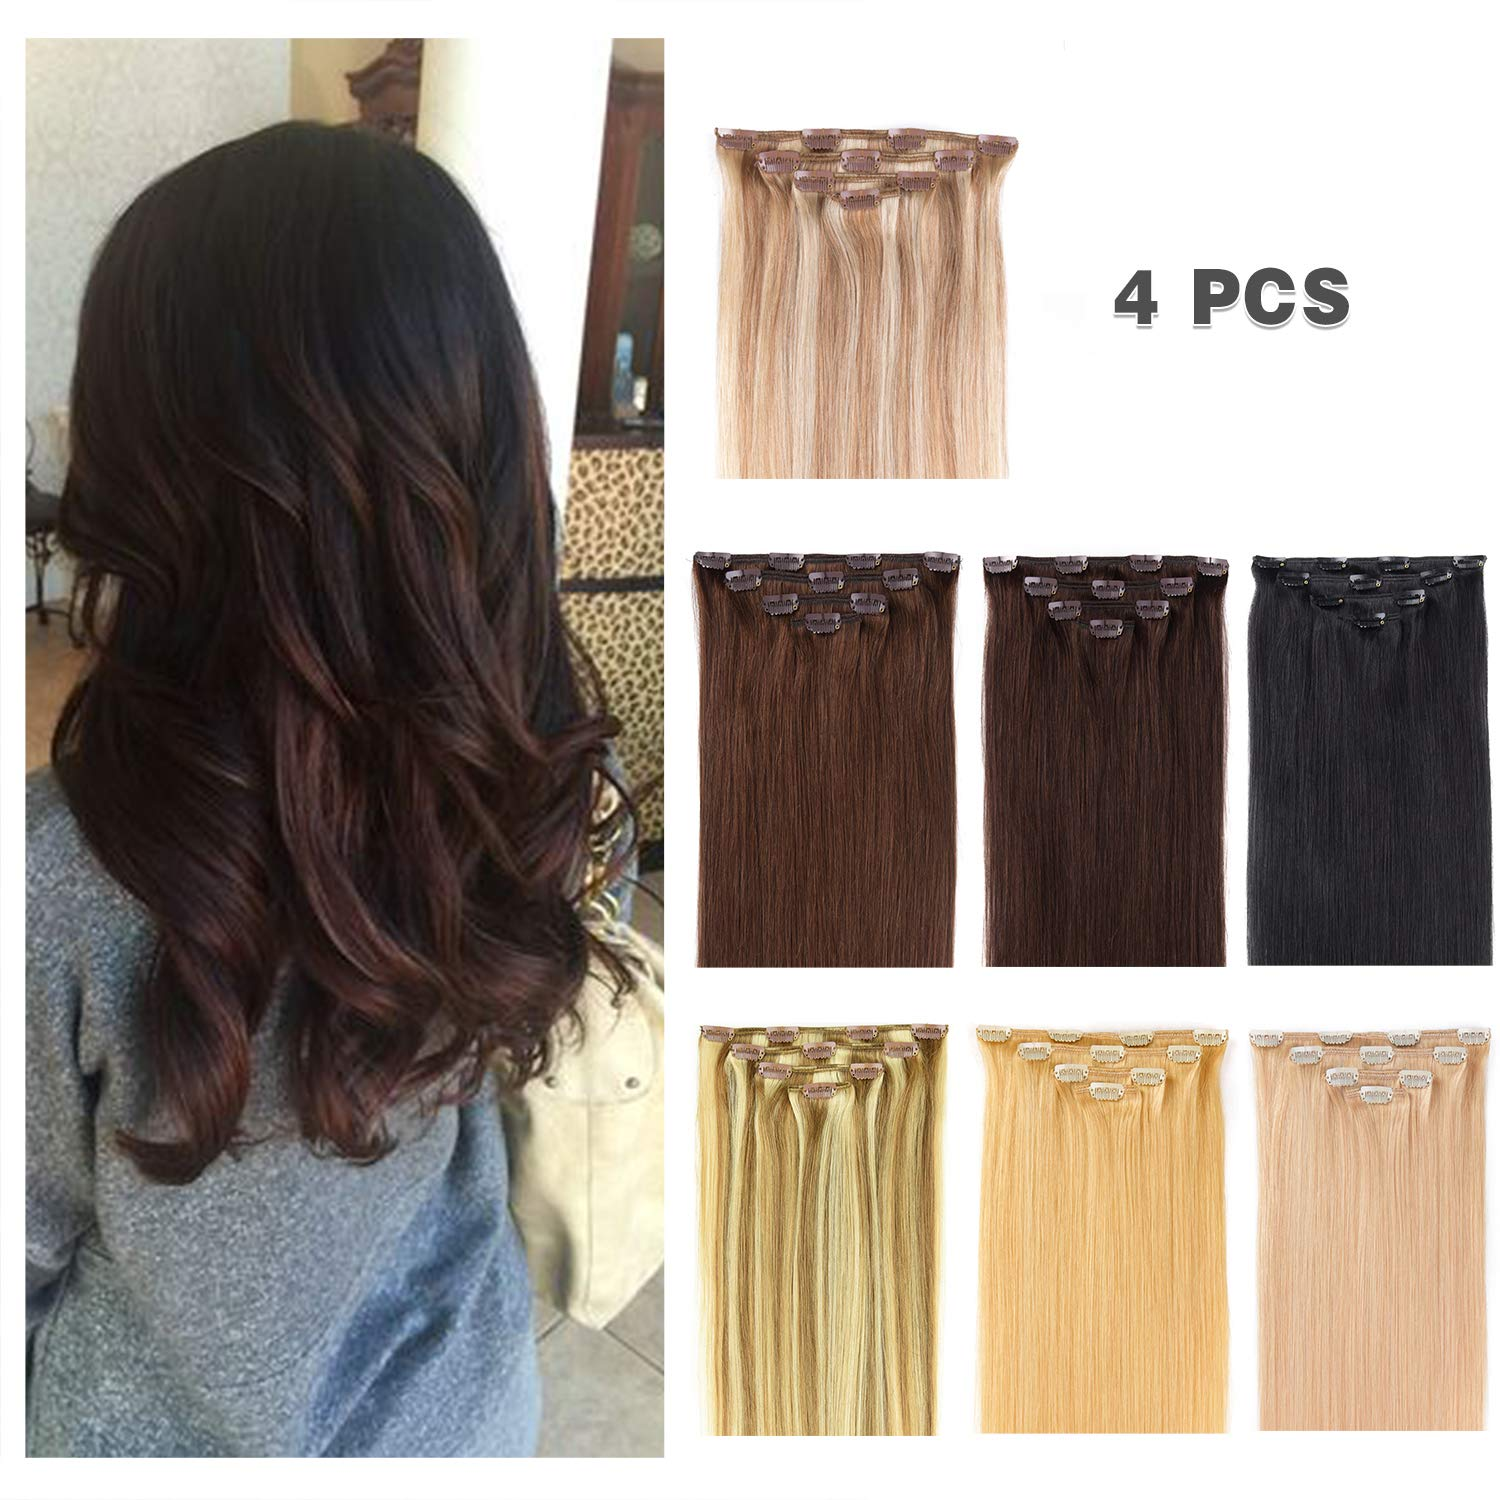 14'' Clip in Hair Extensions Remy Human Hair for Women - Silky Straight Human Hair Clip in Extensions 50grams 4pieces Dark Brown #2 Color by Winsky